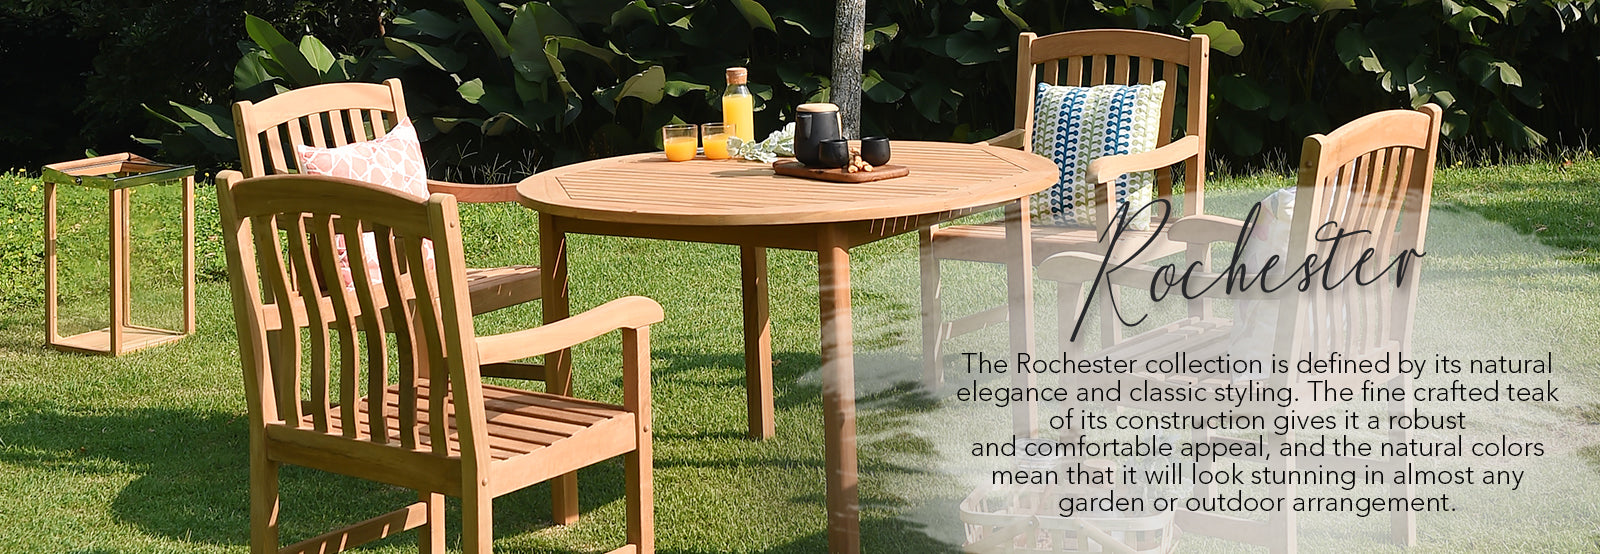 Explore the Rochester collection of outdoor garden furniture from Cambridge Casual. Classic styling and natural elegance combine for a stunning effect.